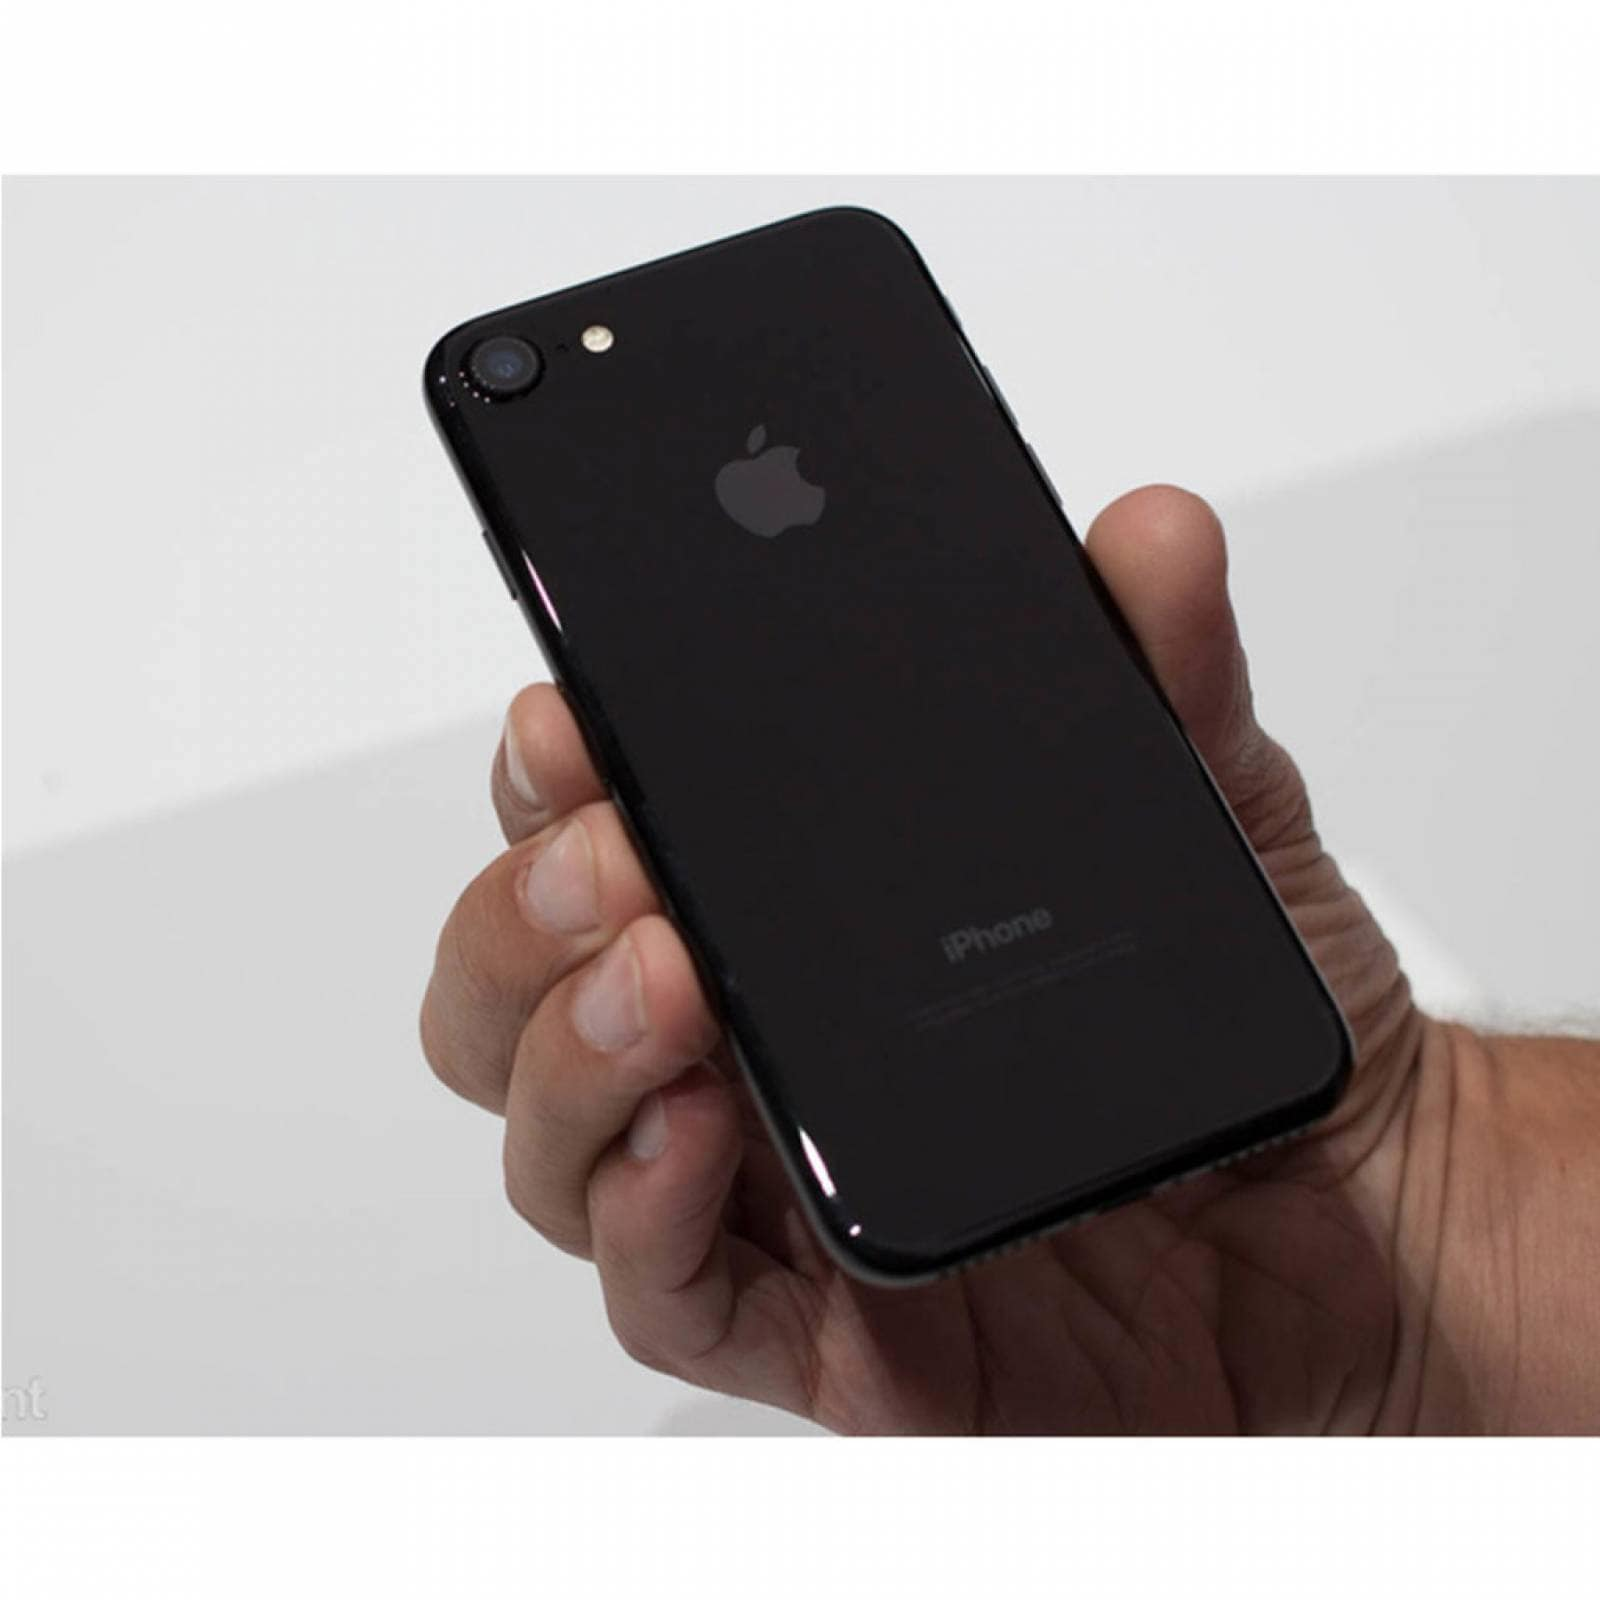 Celular IPhone 7 256GB Reacondicionado por Apple Jet Black